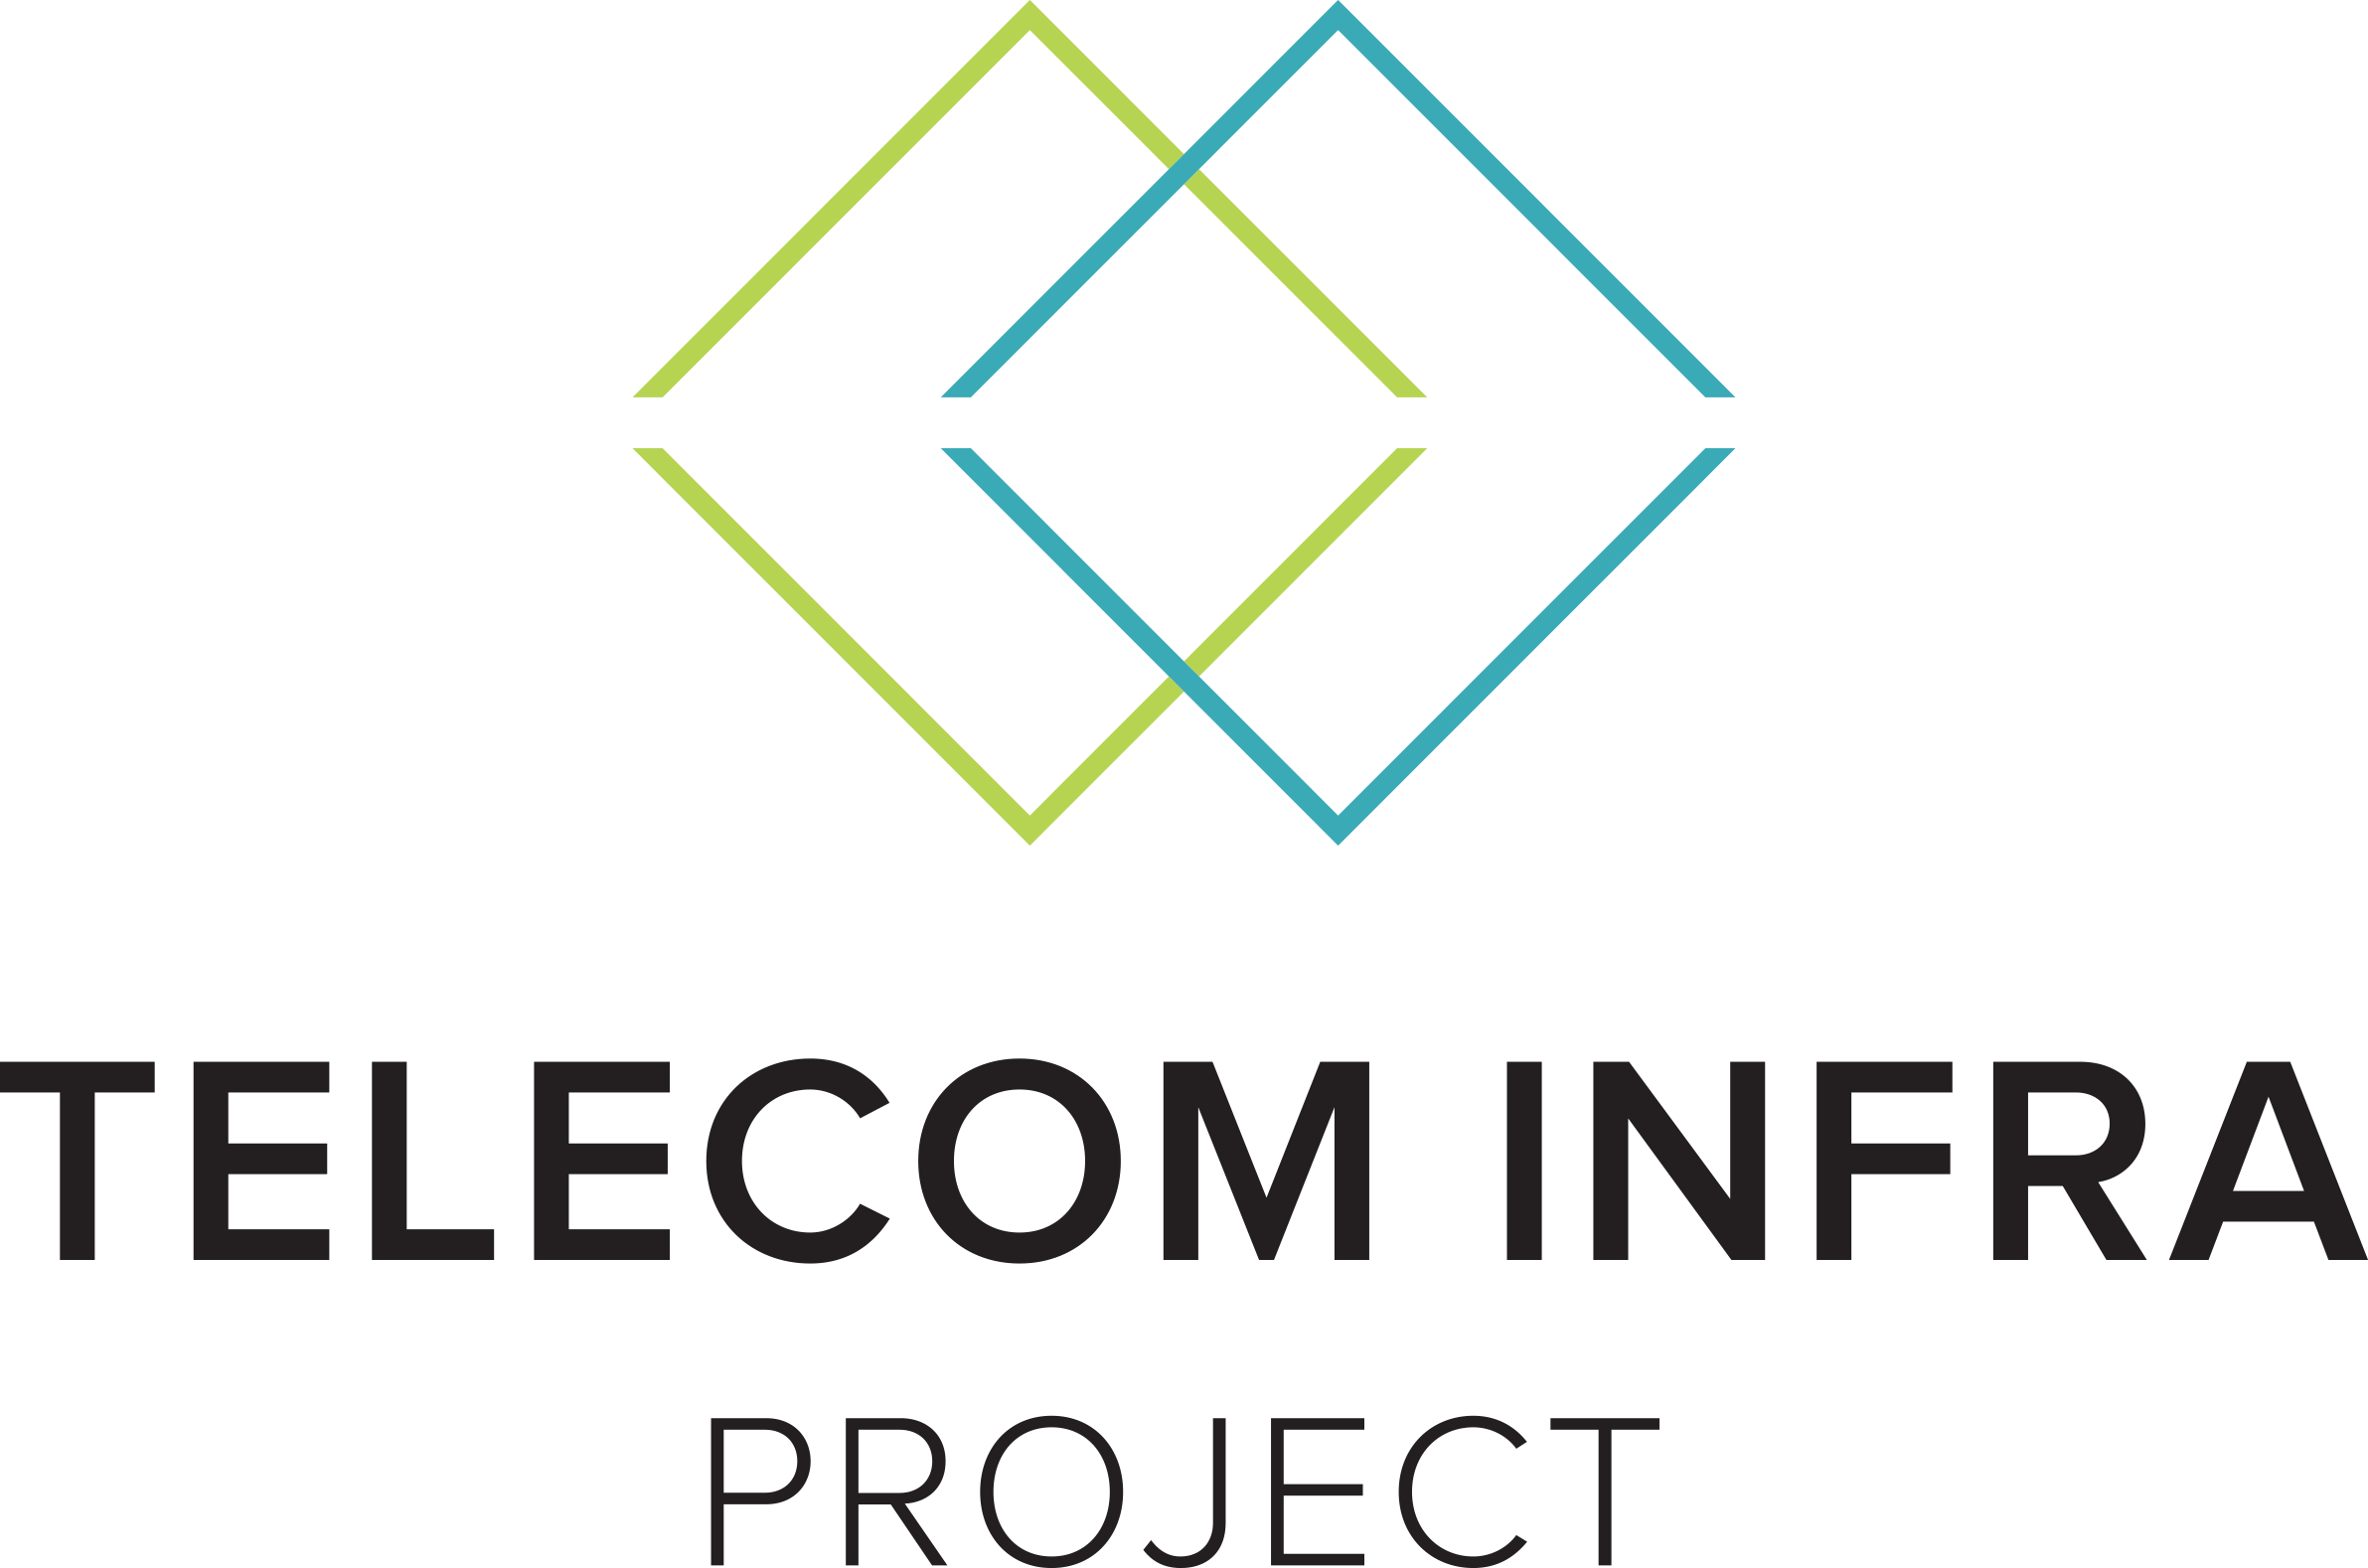 The Telecom Infra Project